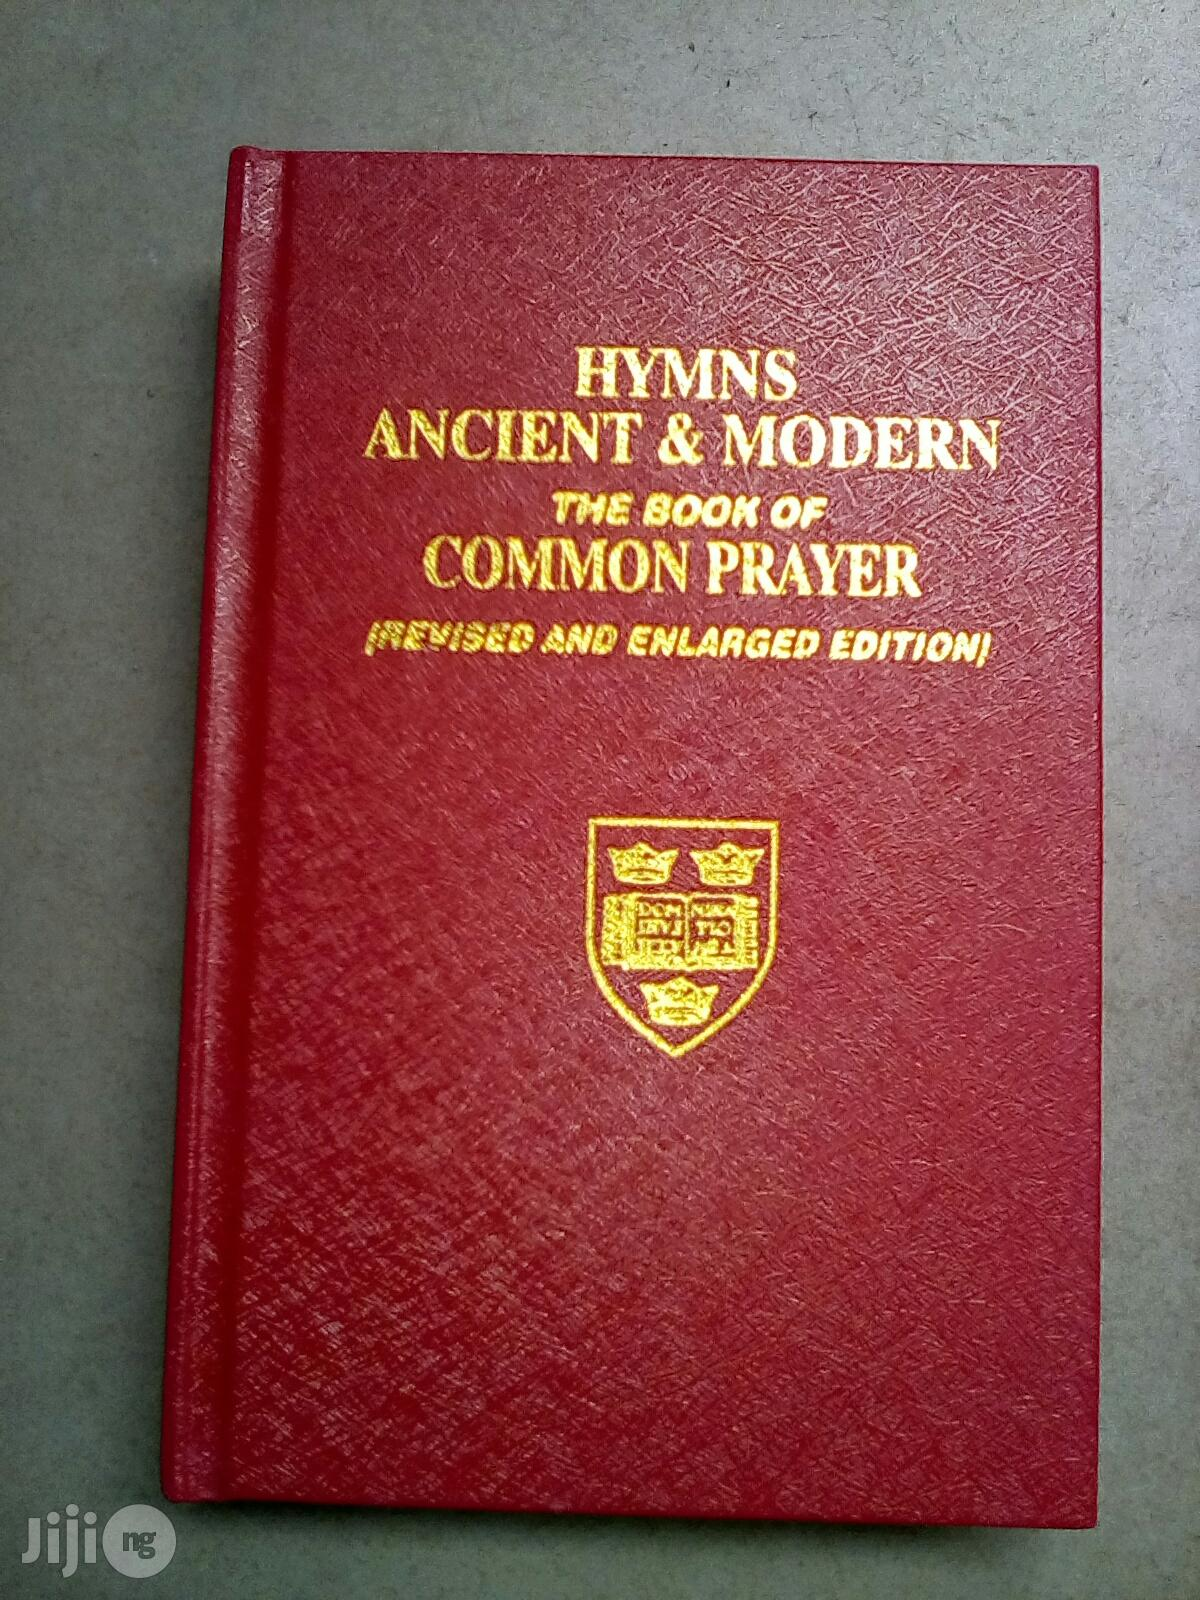 Hymns Ancient And Modern.